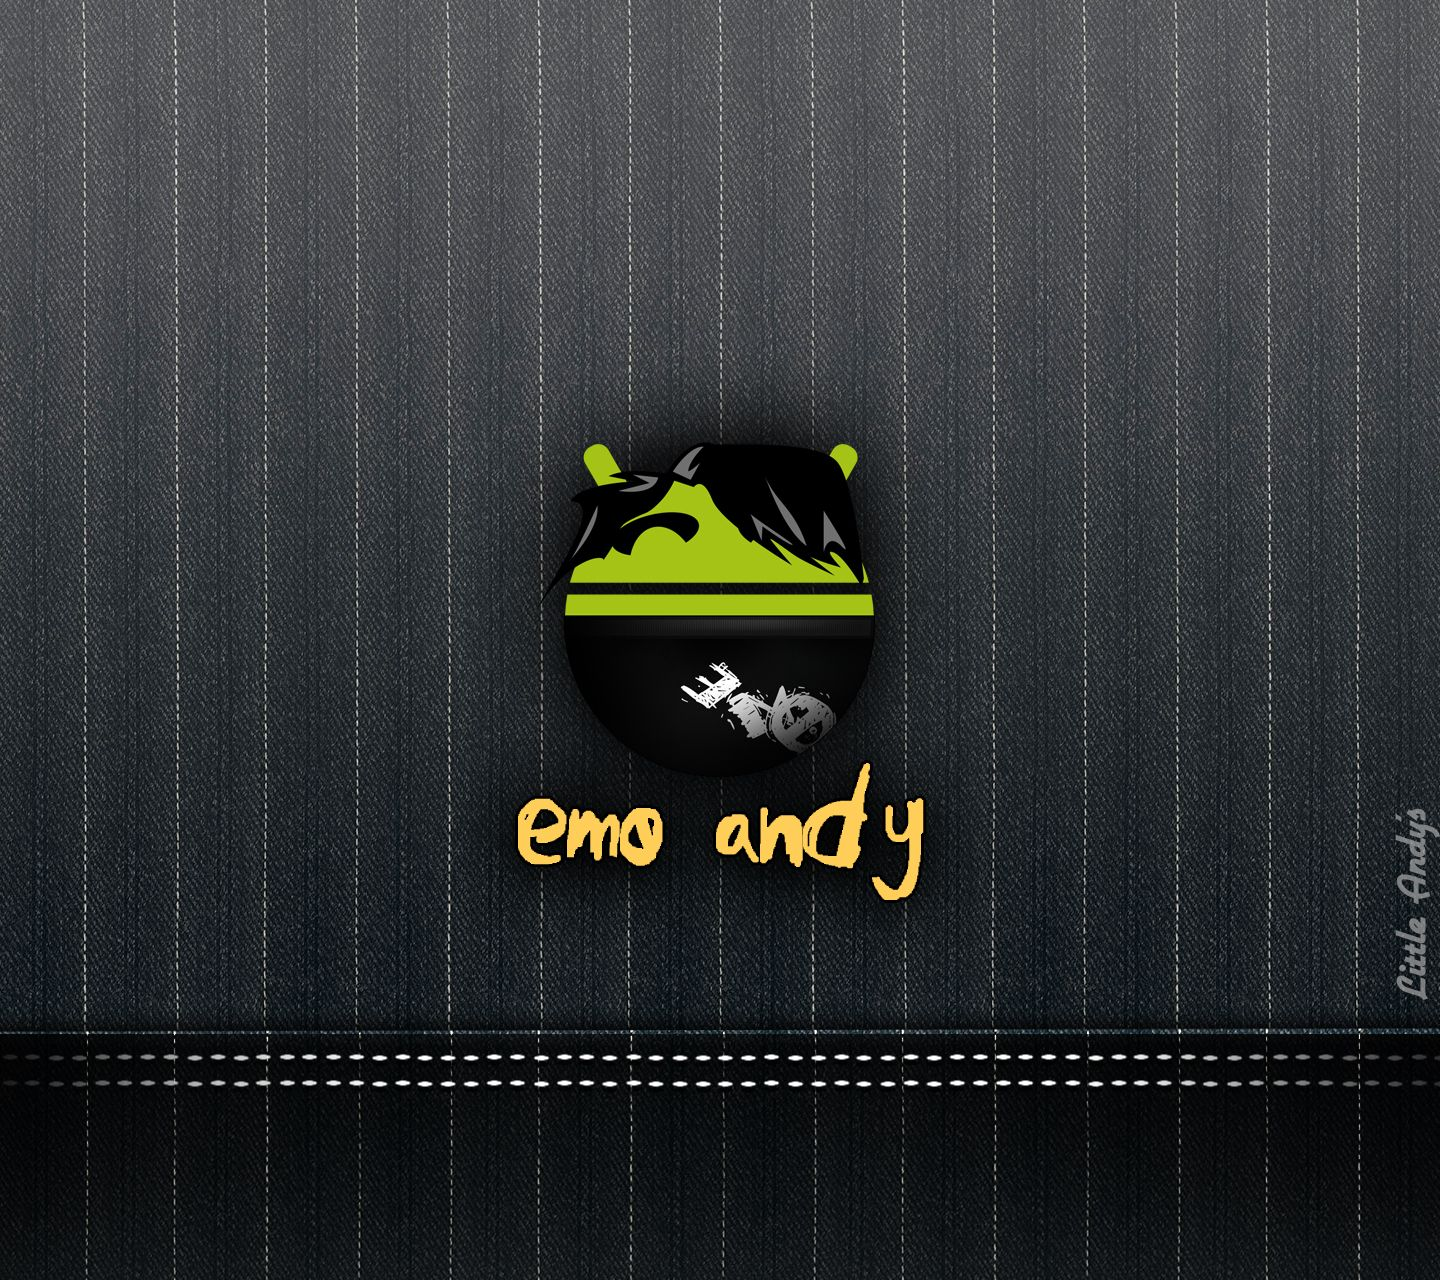 Android Emo Phone Wallpapers Rat 850125 Hd Wallpaper